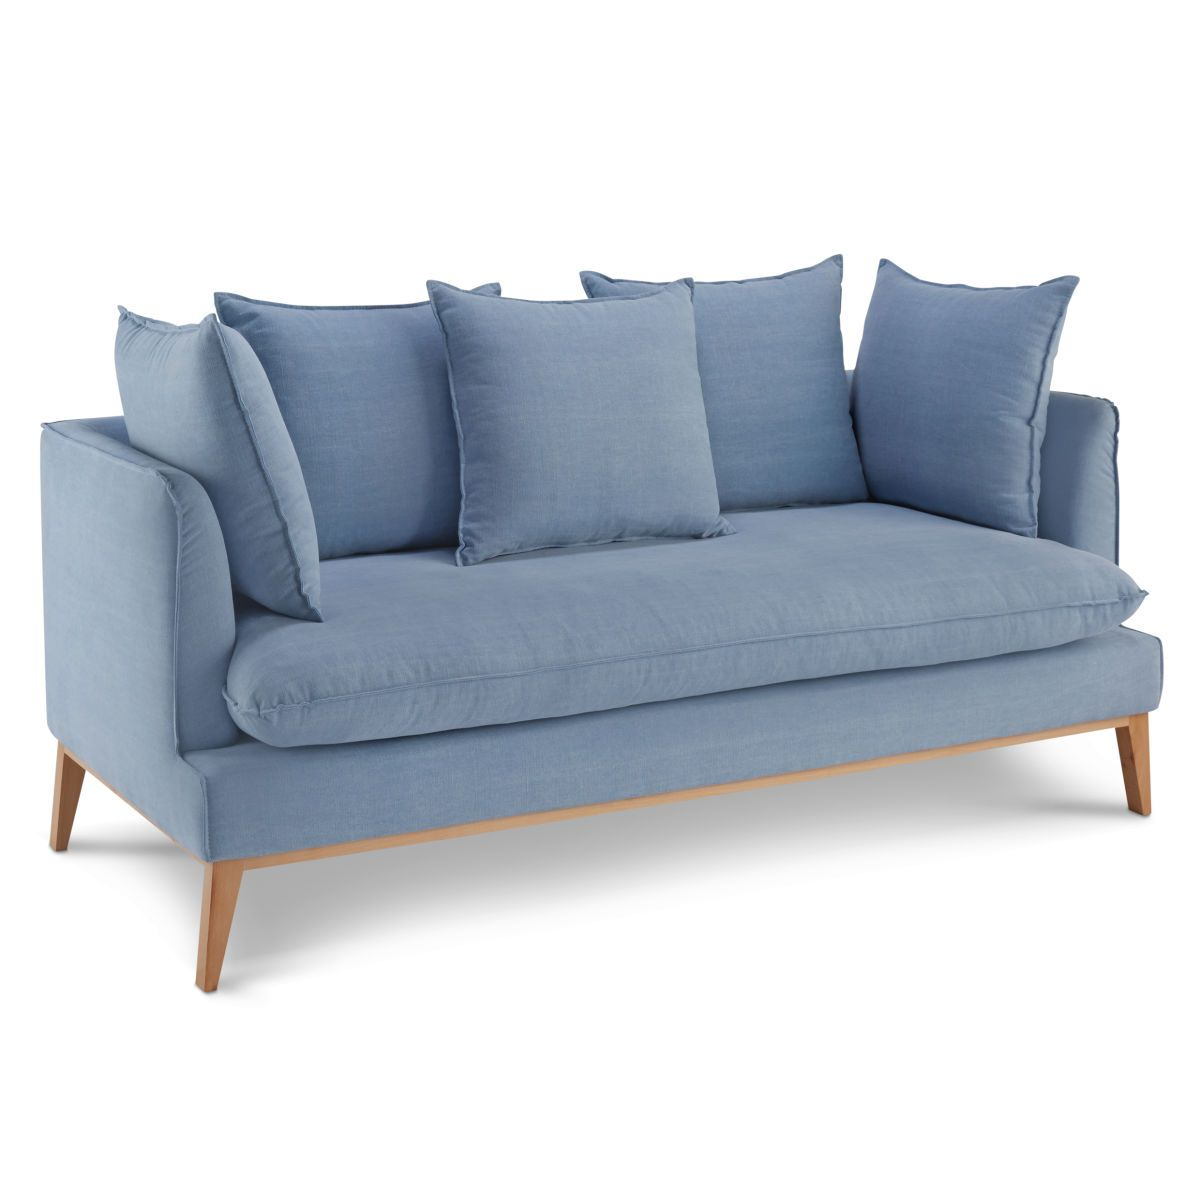 Vintage sofa retro couch puro retro couch vintage for Sofa 60er jahre stil